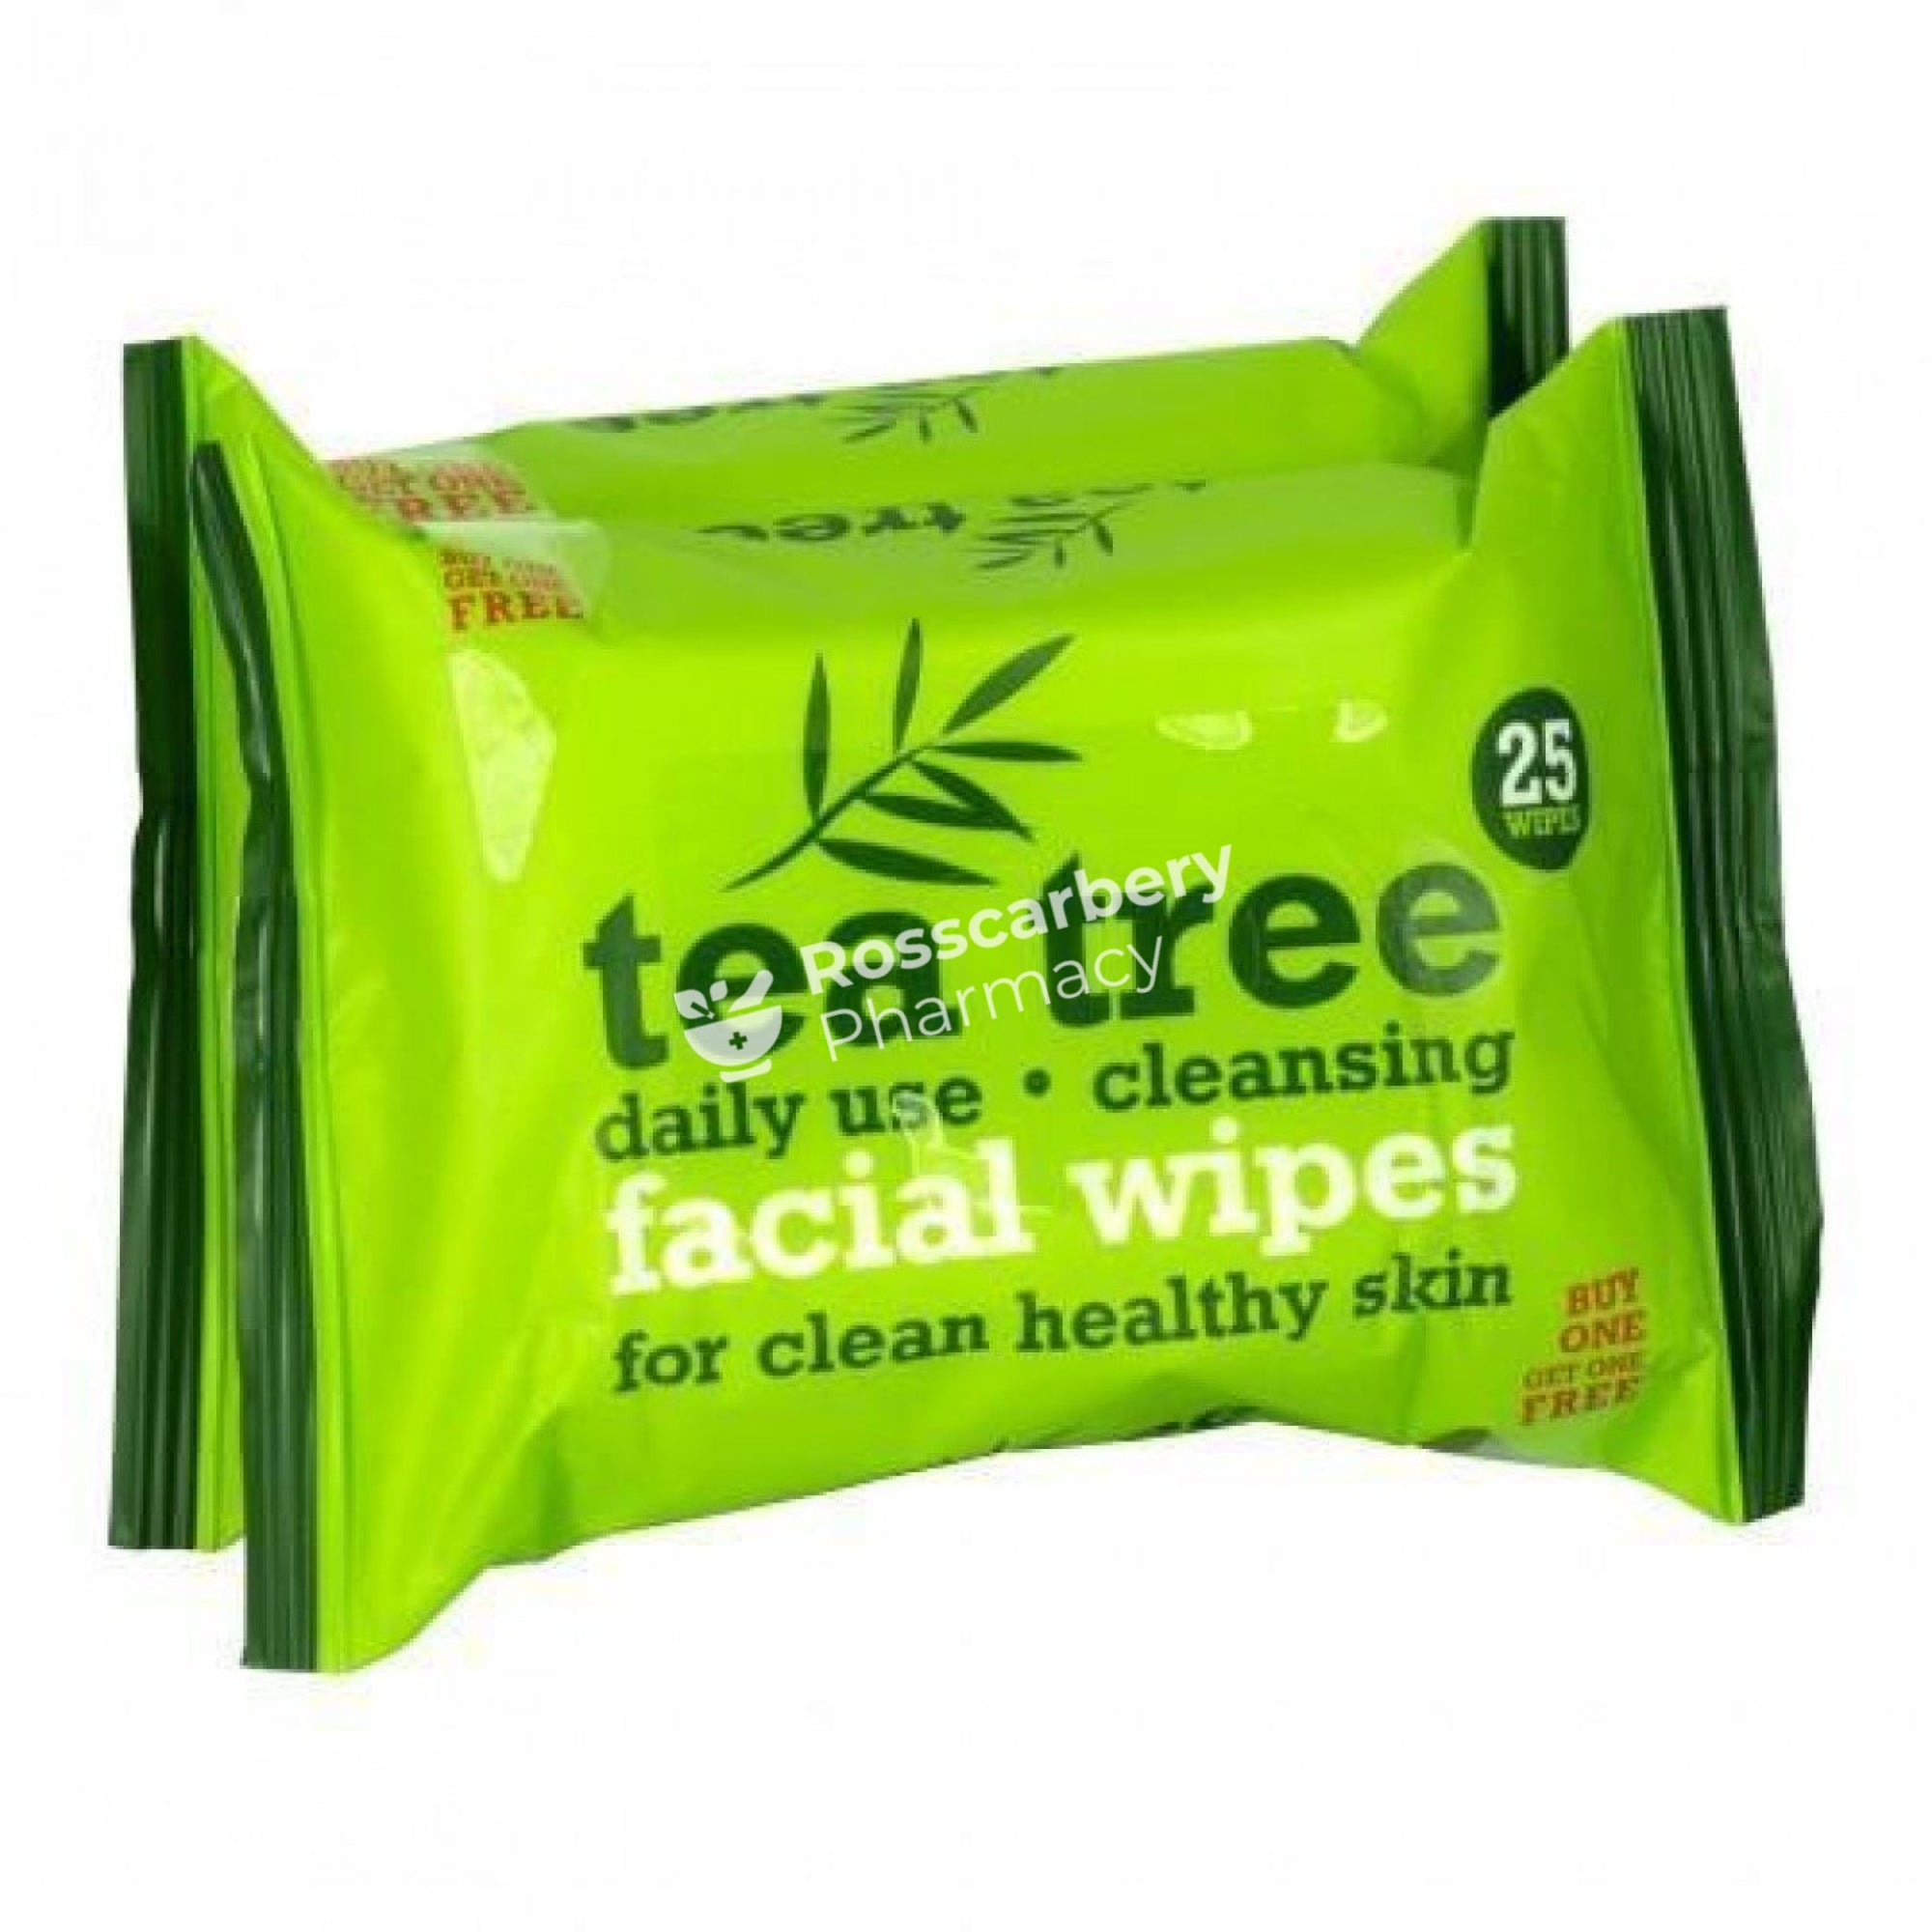 Tea Tree Daily Use Cleansing Facial Wipes Twin Pack Cotton Wool & Tissues